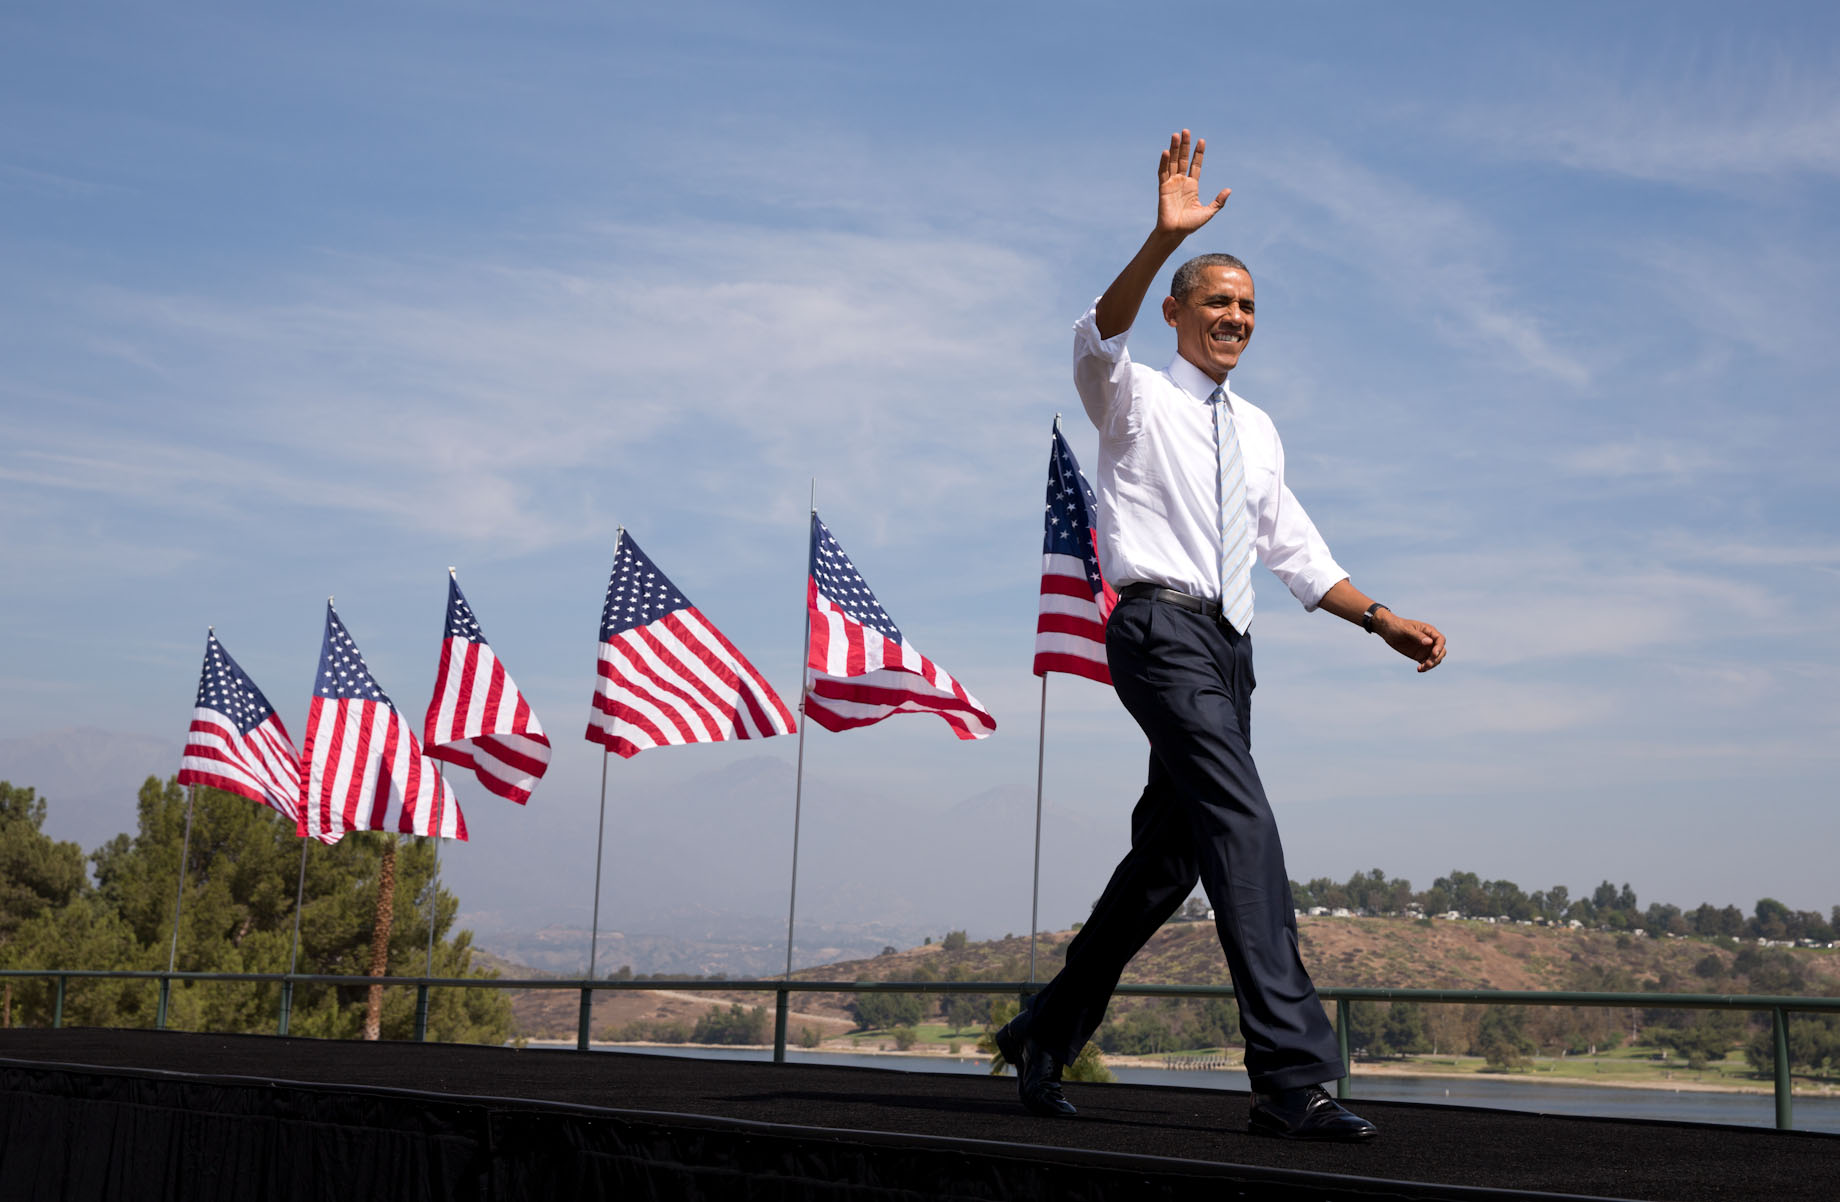 President Obama walks onstage at Bonelli Regional Park to announce the creation of the San Gabriel Mountains National Monument